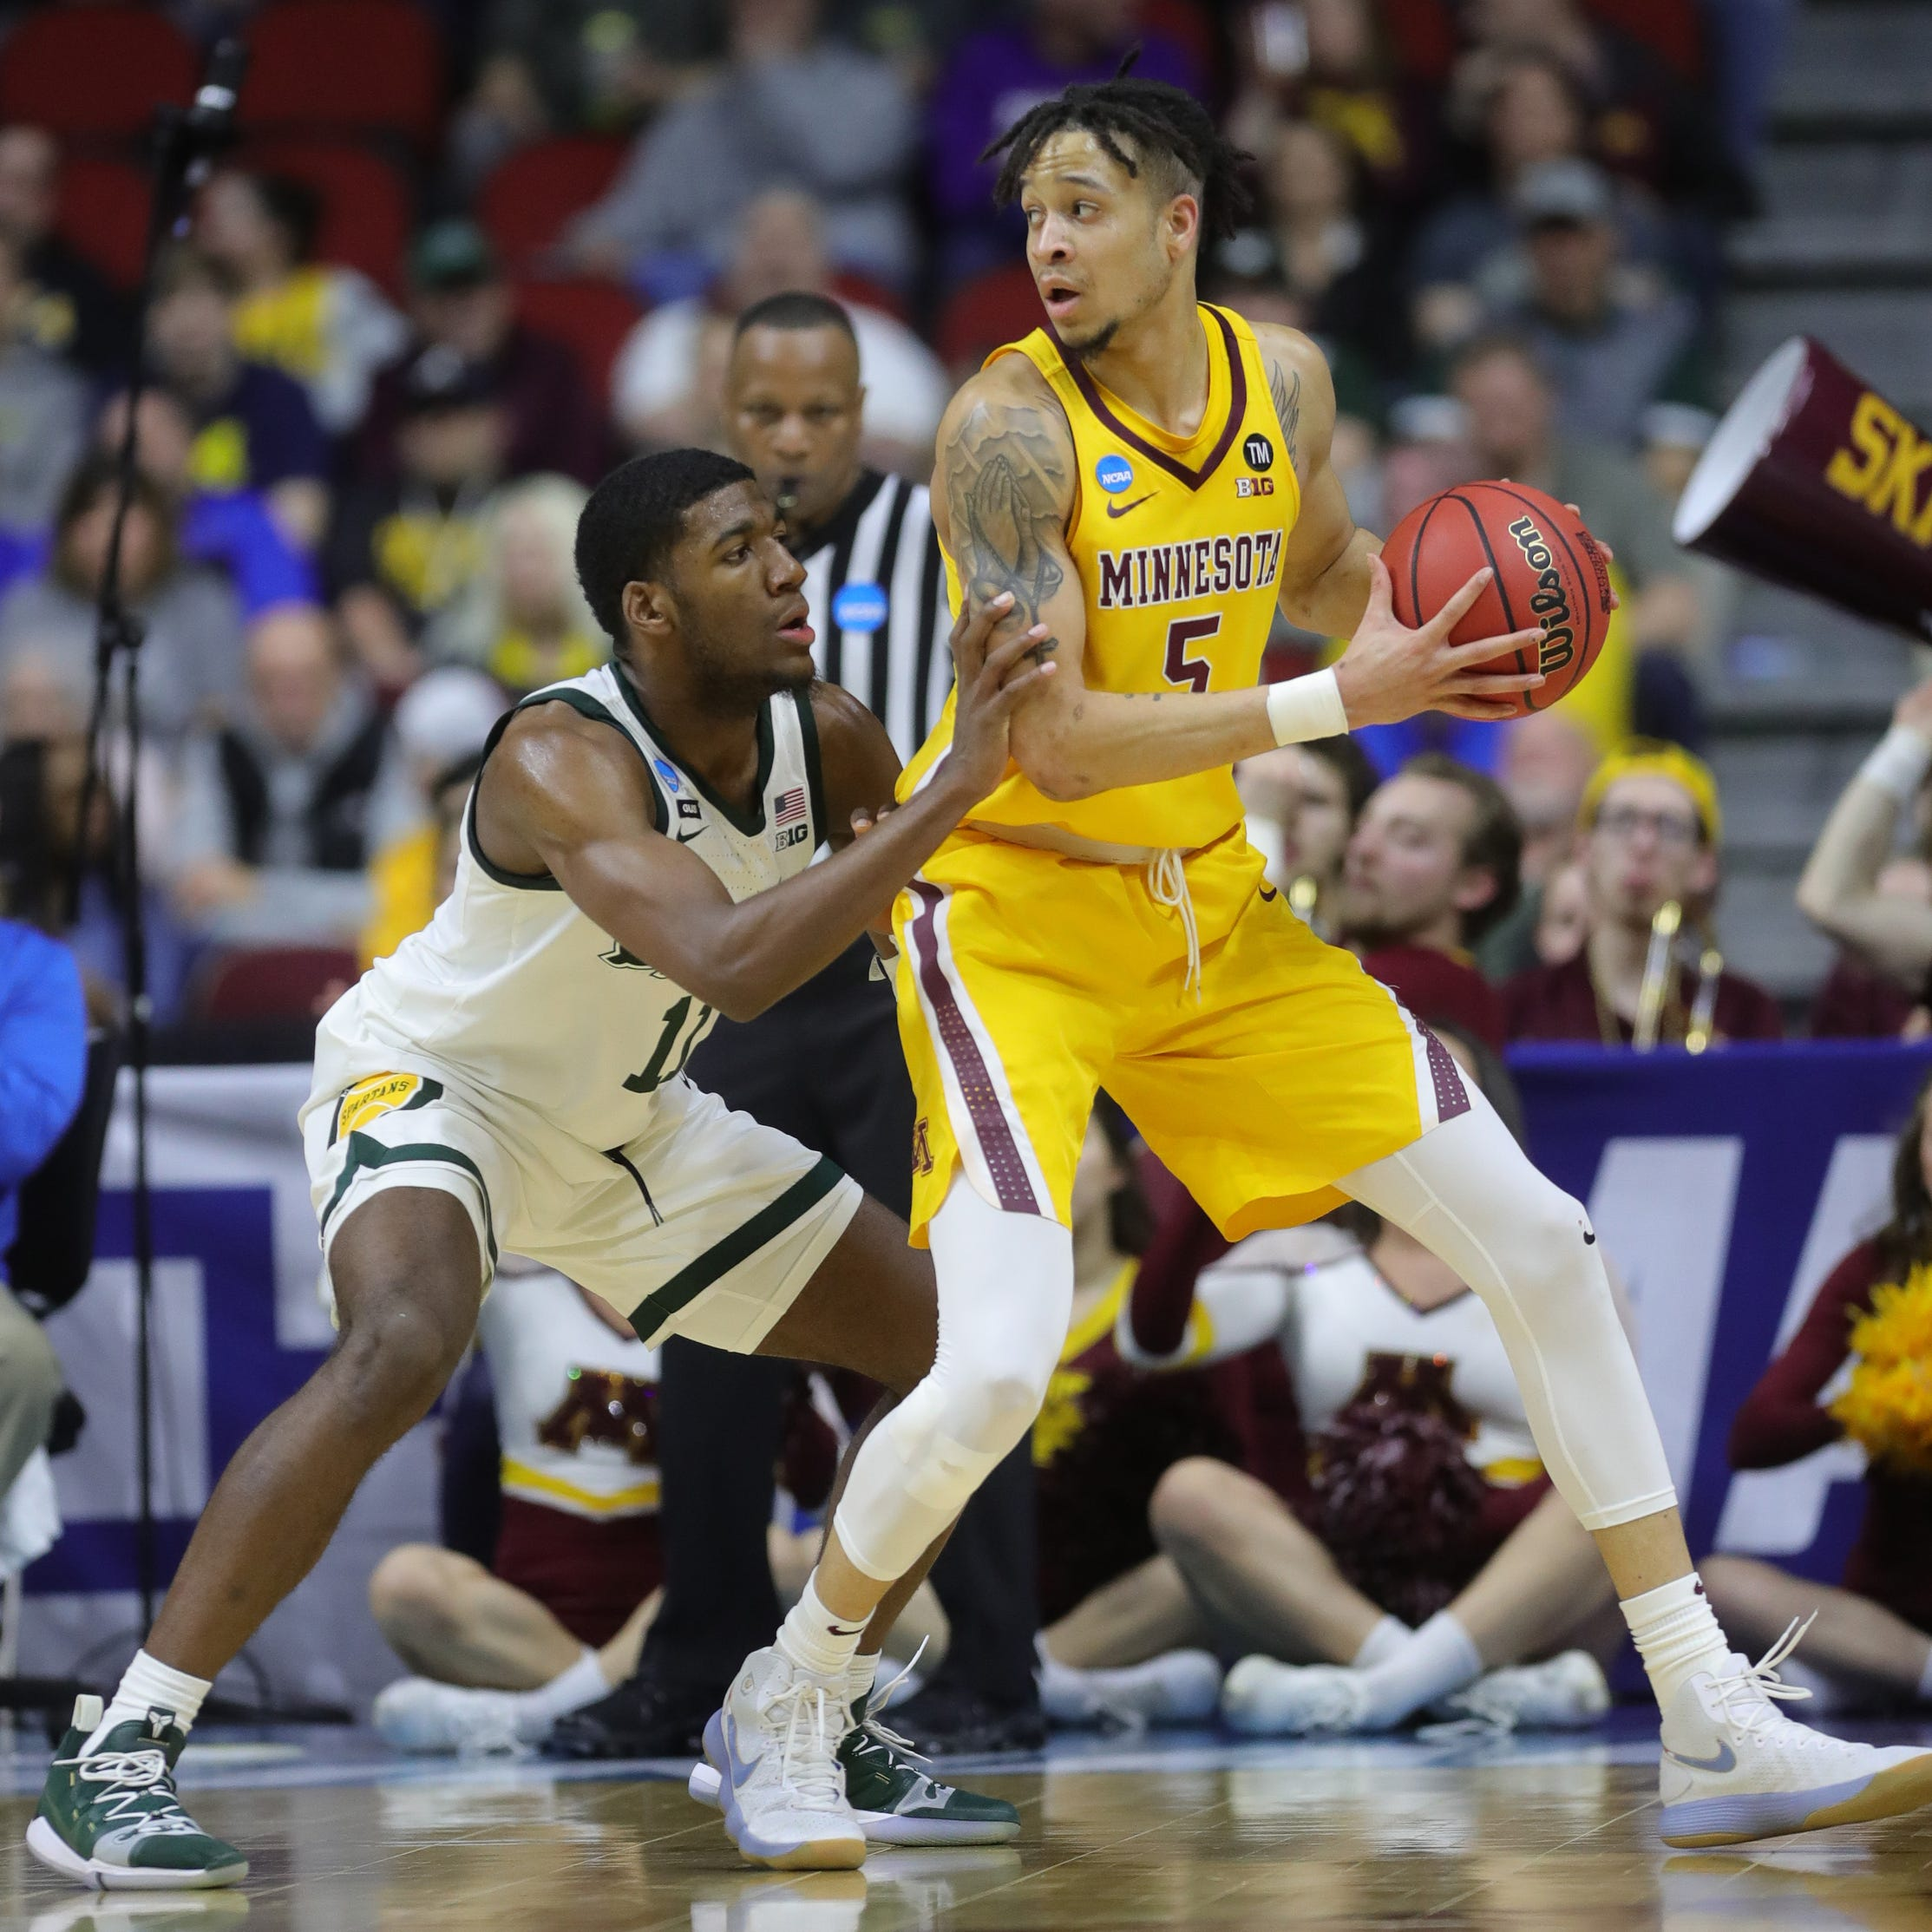 Three keys for Michigan State to defeat LSU in the NCAA tournament Sweet 16